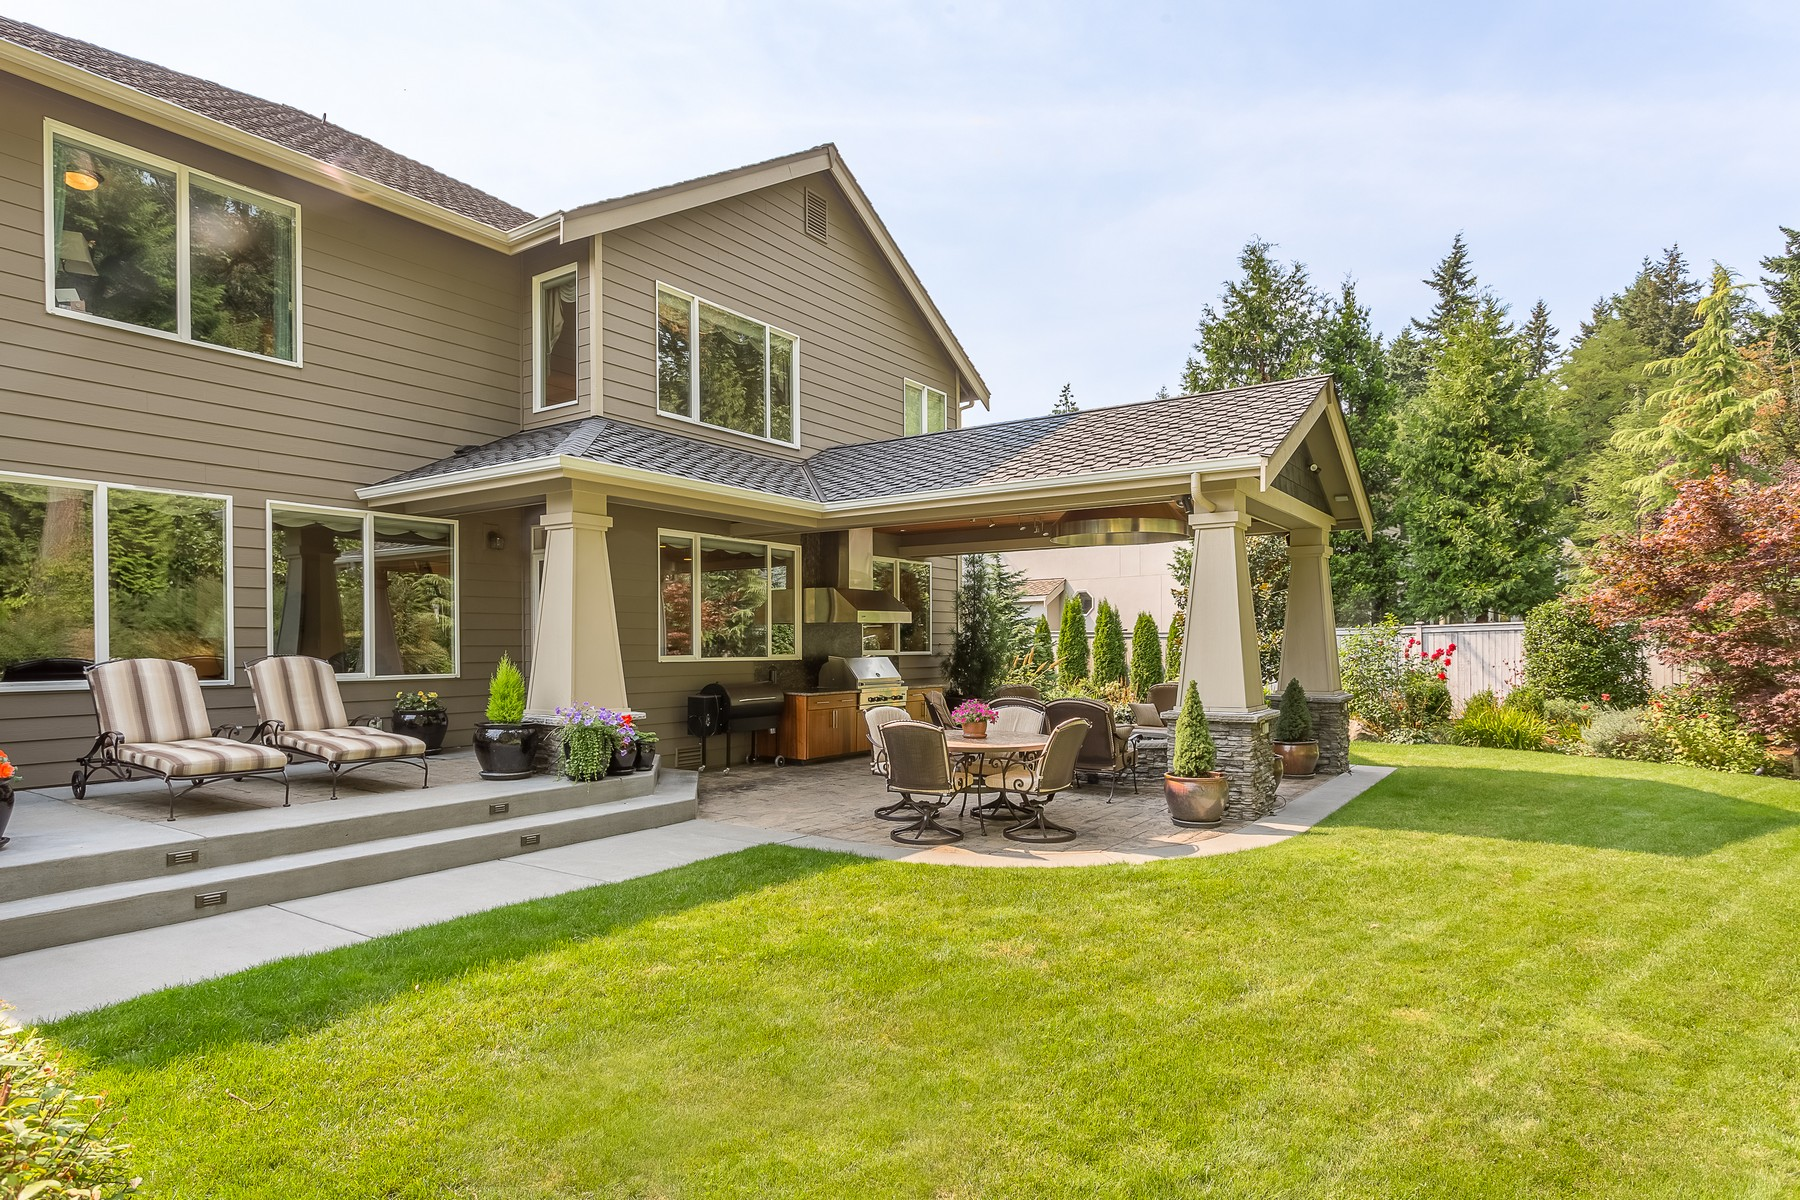 Single Family Home for Sale at Elegant Burnstead in Newcastle 14306 SE 87th Place Newcastle, Washington 98059 United States